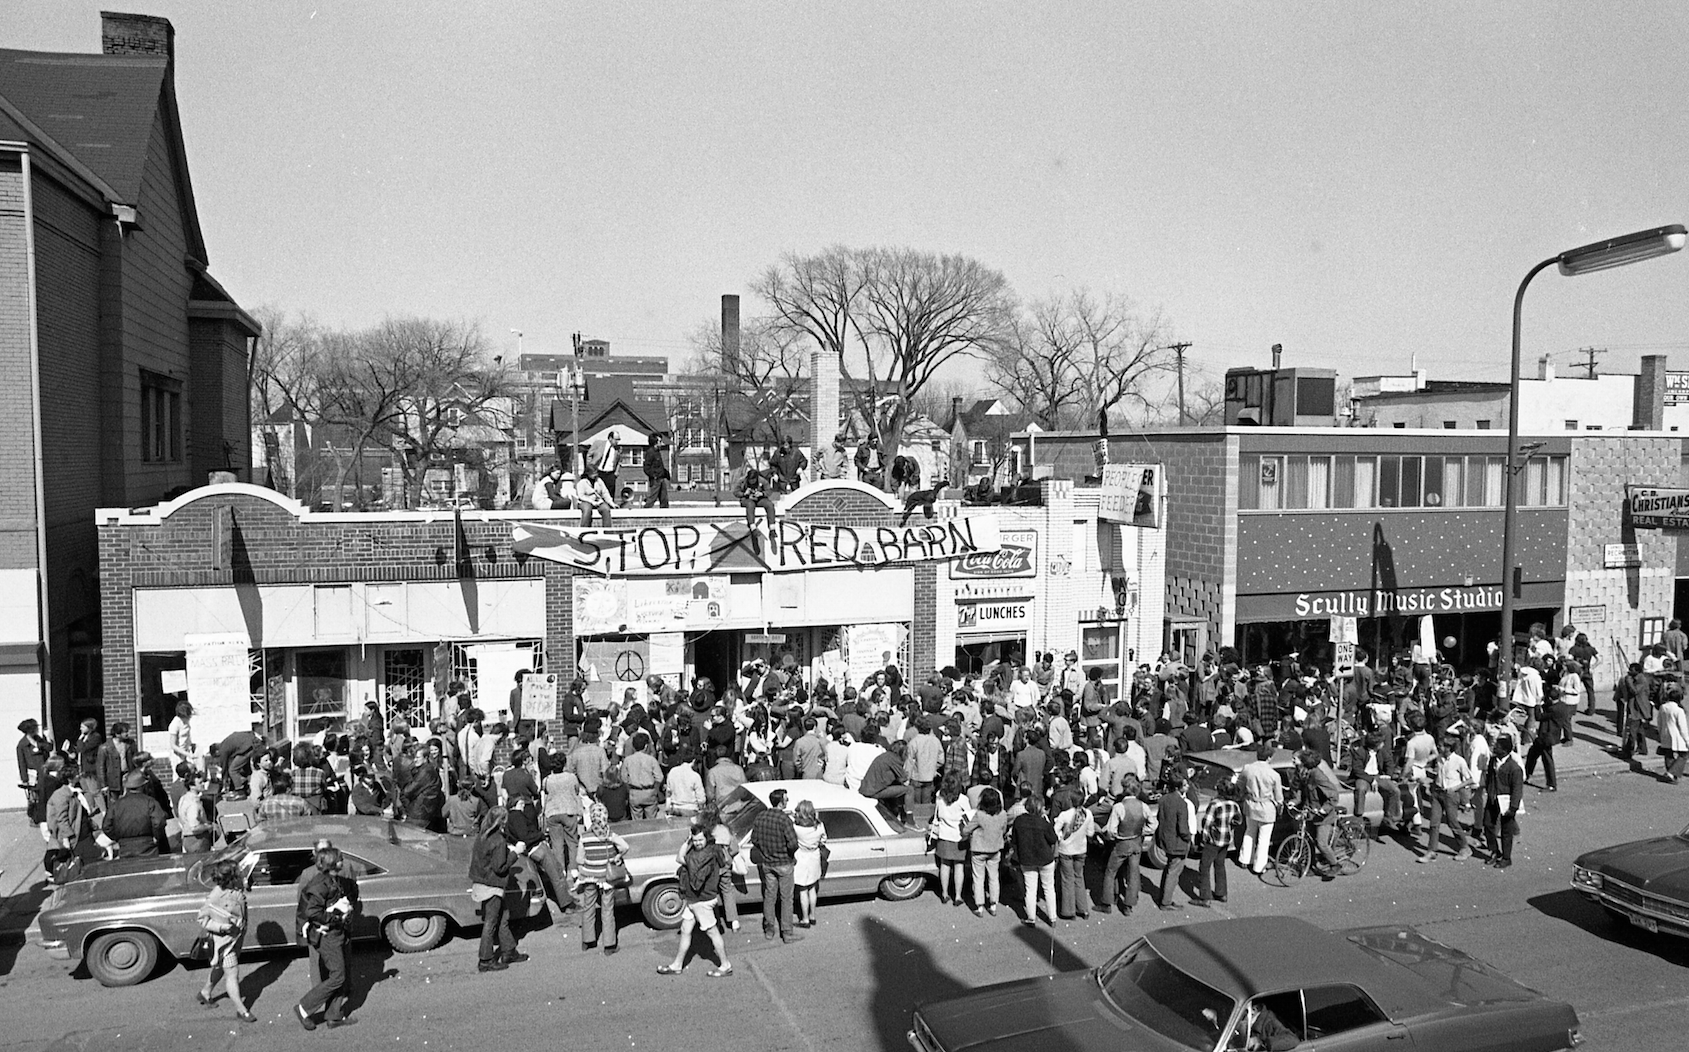 Protesters gathered in and around vacated buildings for a month in 1970 to prevent their demolition for the construction of a fast-food restaurant. Over the roof, you can see Marshall High School in the distant background a block away and some former Victorian homes that had been converted to businesses. Photo by and Copyright Cheryl Walsh Bellville.